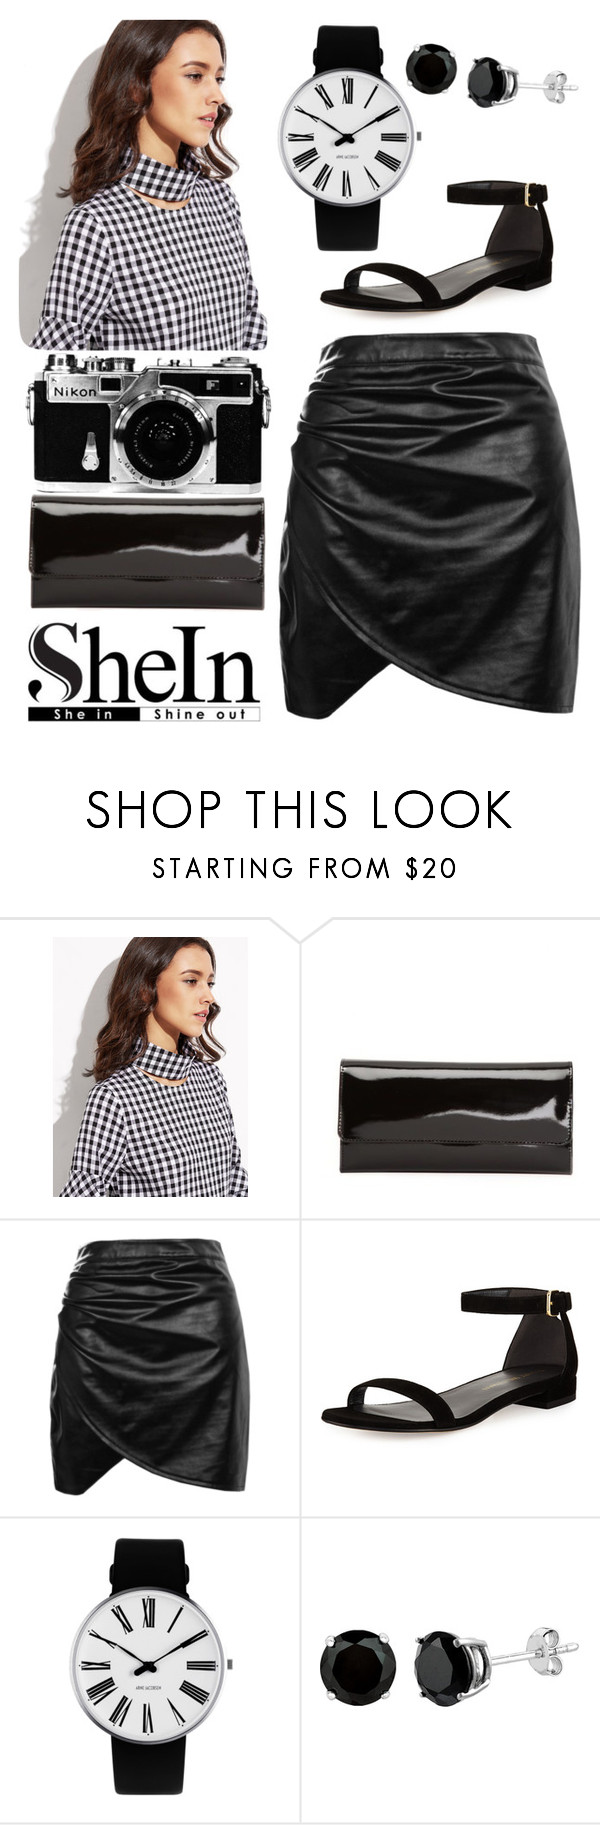 """Untitled #57"" by iheartevergreens on Polyvore featuring Nikon, P. Sherrod & Co., Boohoo, Stuart Weitzman and Rosendahl"